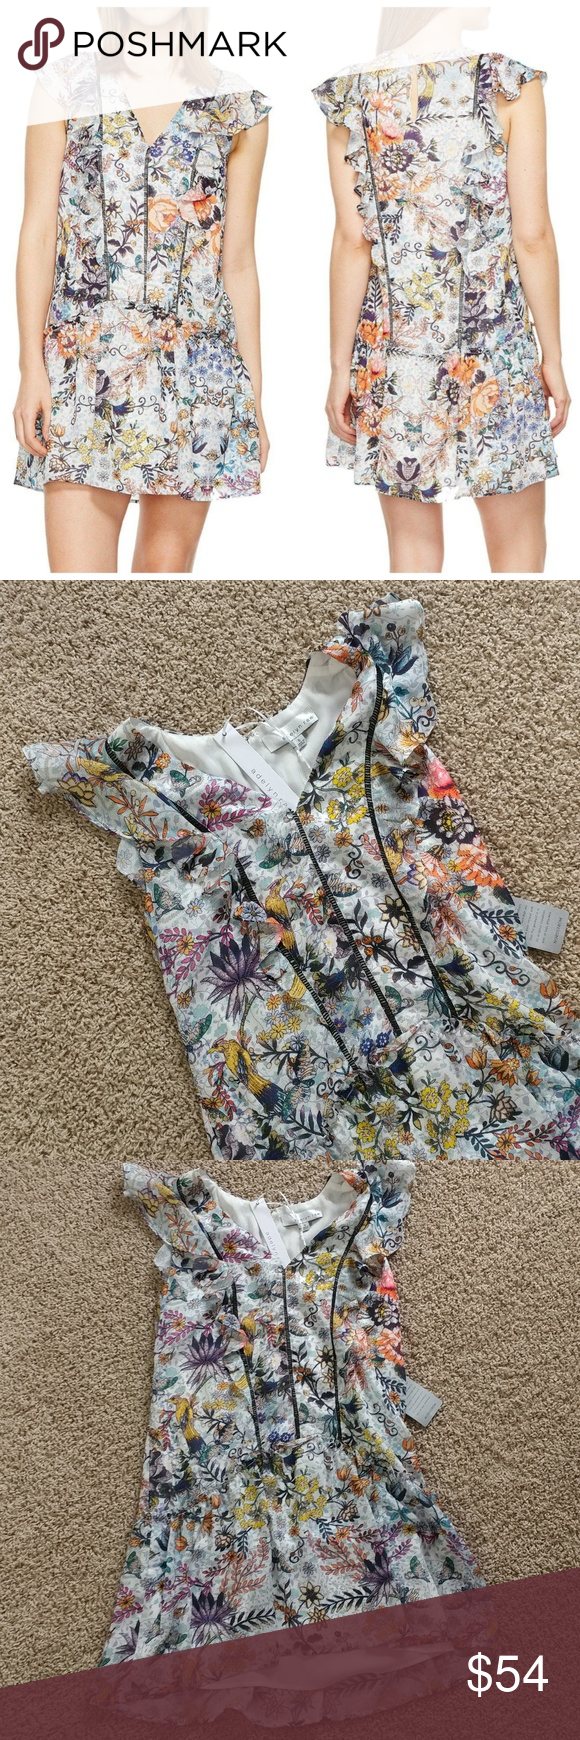 """Adelyn Rae Lydia Printed Floral Frill Shift Dress Brand new with tags Adelyn Rae Lydia Printed Frill Shift Dress size Small. Retails for $120. No defects and from a smoke and pet free home. Shift silhouette, V-neckline. Keyhole cutout and hook closure at nape. Cap sleeves and lattice trim throughout bodice. Perfect to dress up or down.  Shoulder to hem 32"""" long. Armpit to armpit 17"""" across. Adelyn Rae Dresses Mini"""